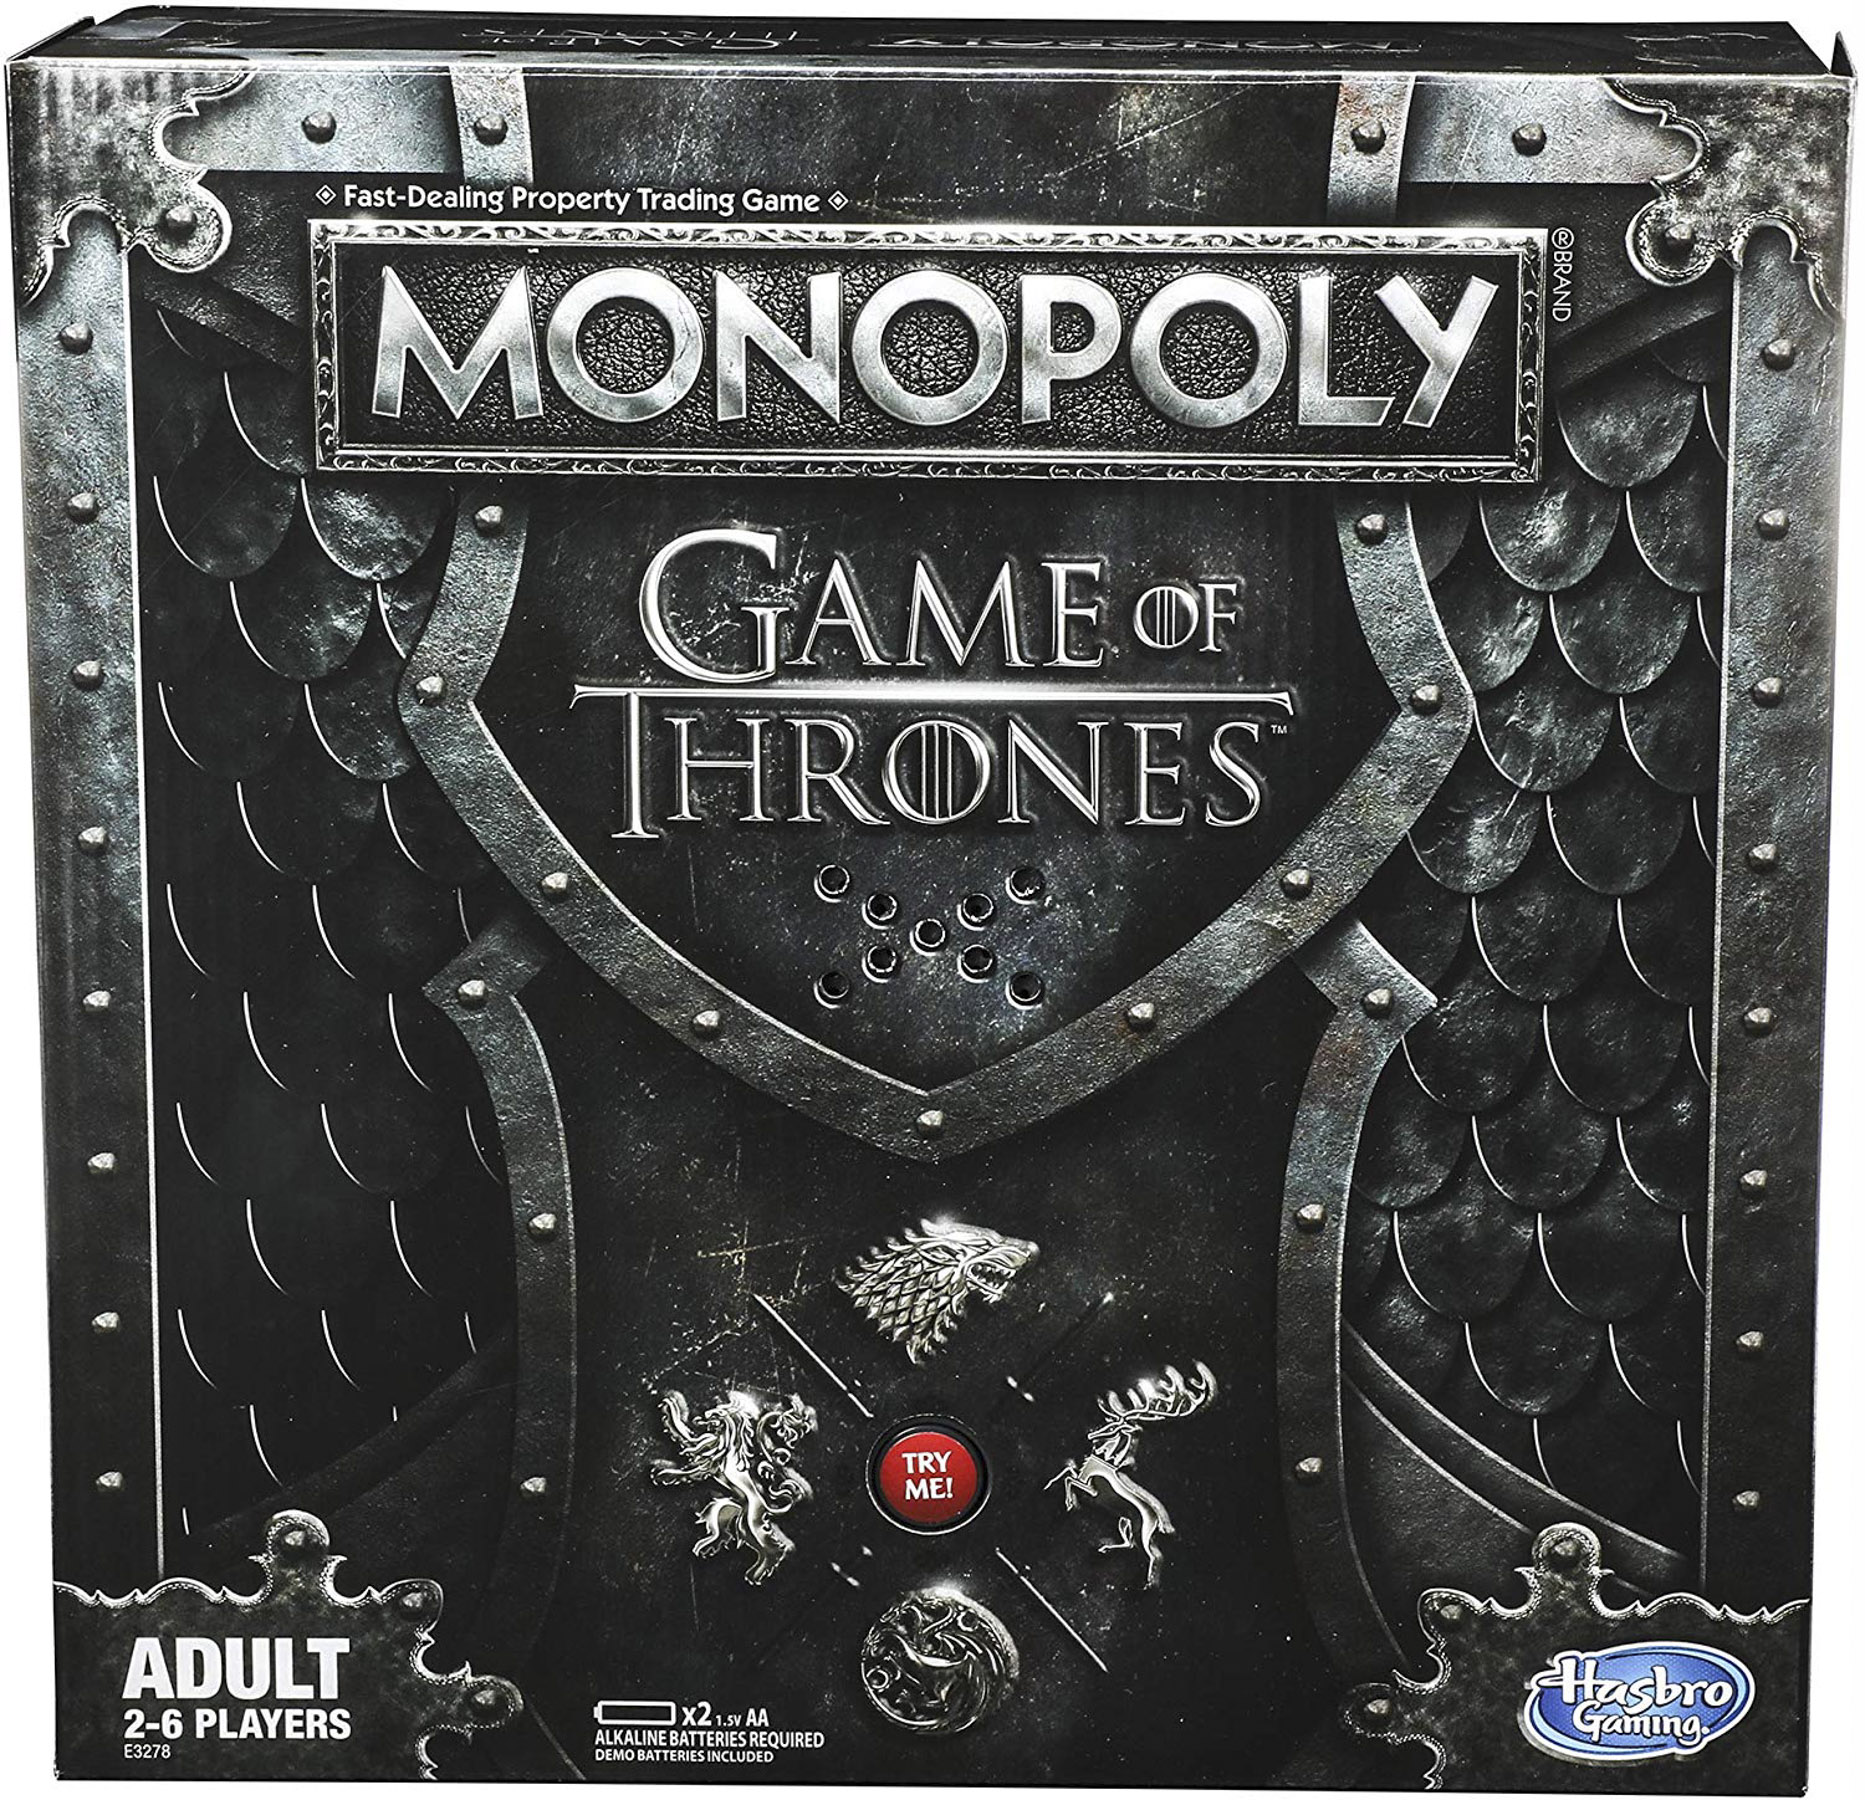 Monopoly Game of Thrones Board Game for Adults on Amazon